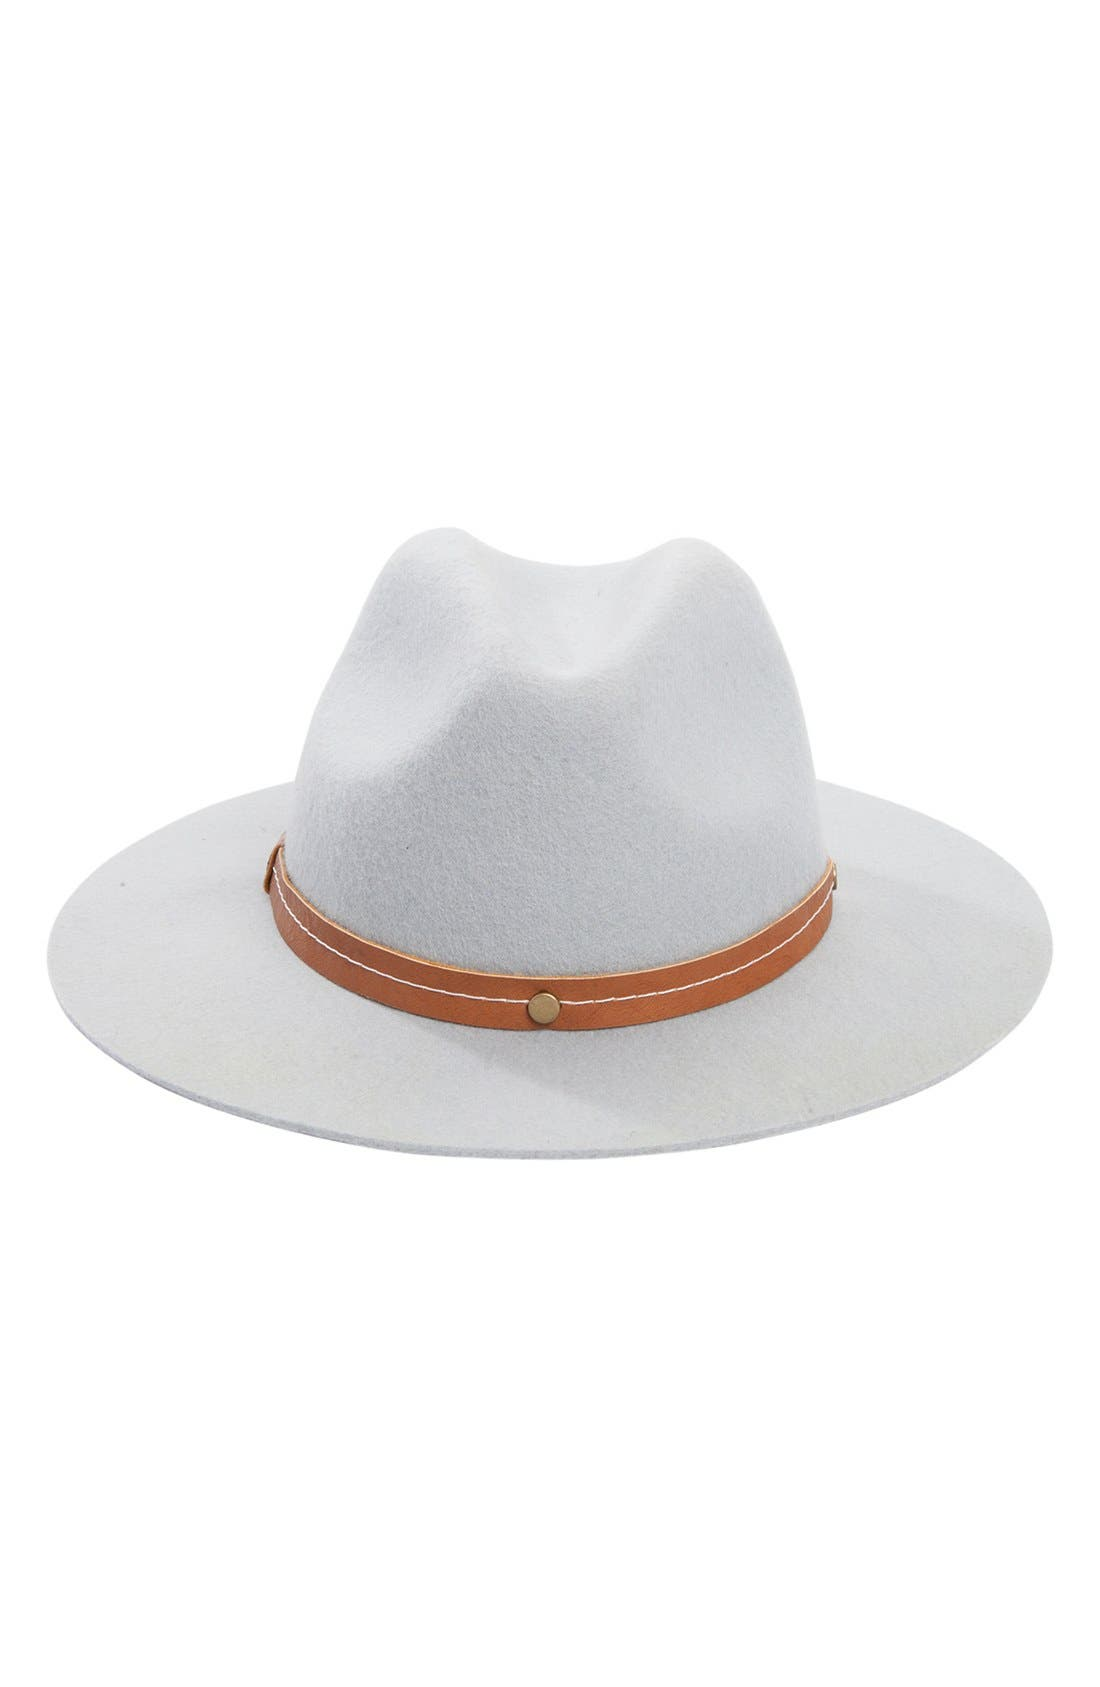 Main Image - Billabong 'Moon Gaze' Wool Panama Hat